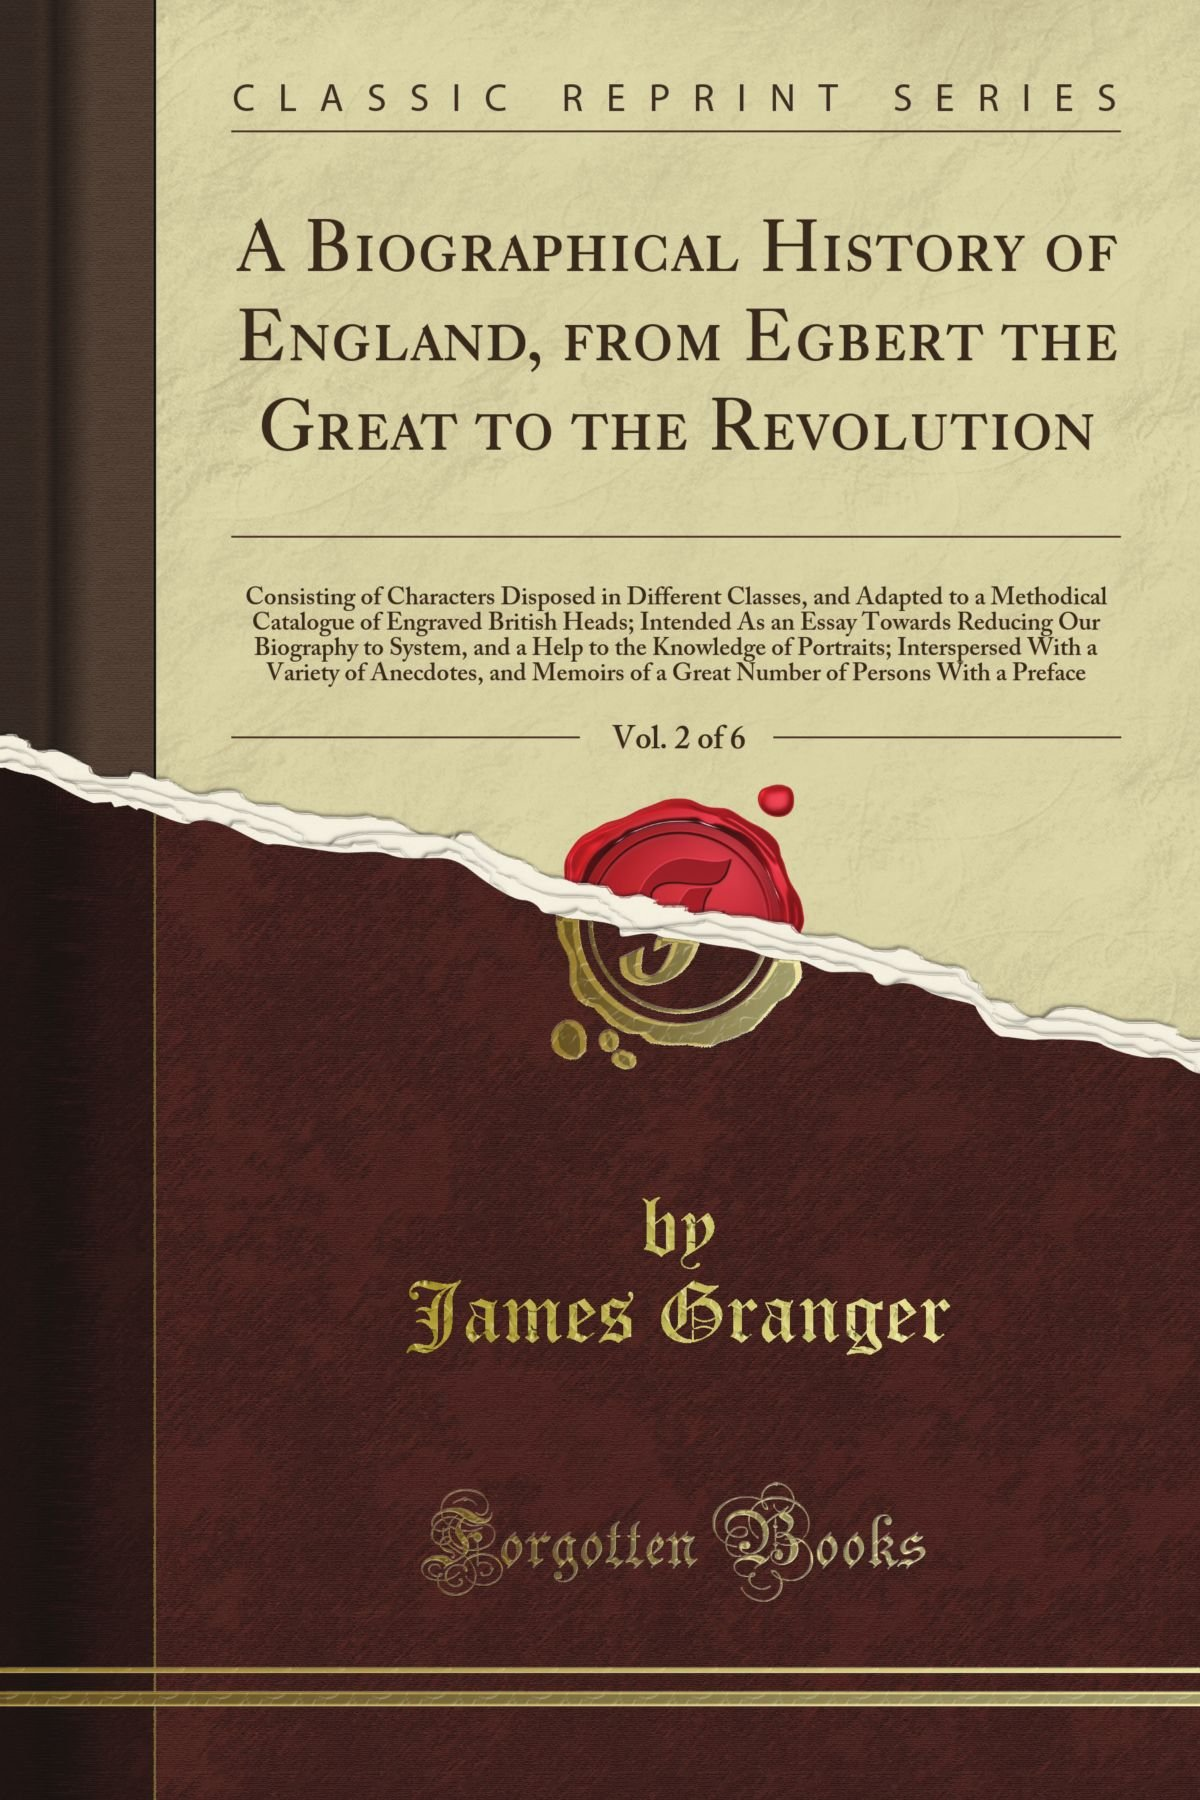 A Biographical History of England, from Egbert the Great to the Revolution, Vol. 2 of 6 (Classic Reprint) ebook